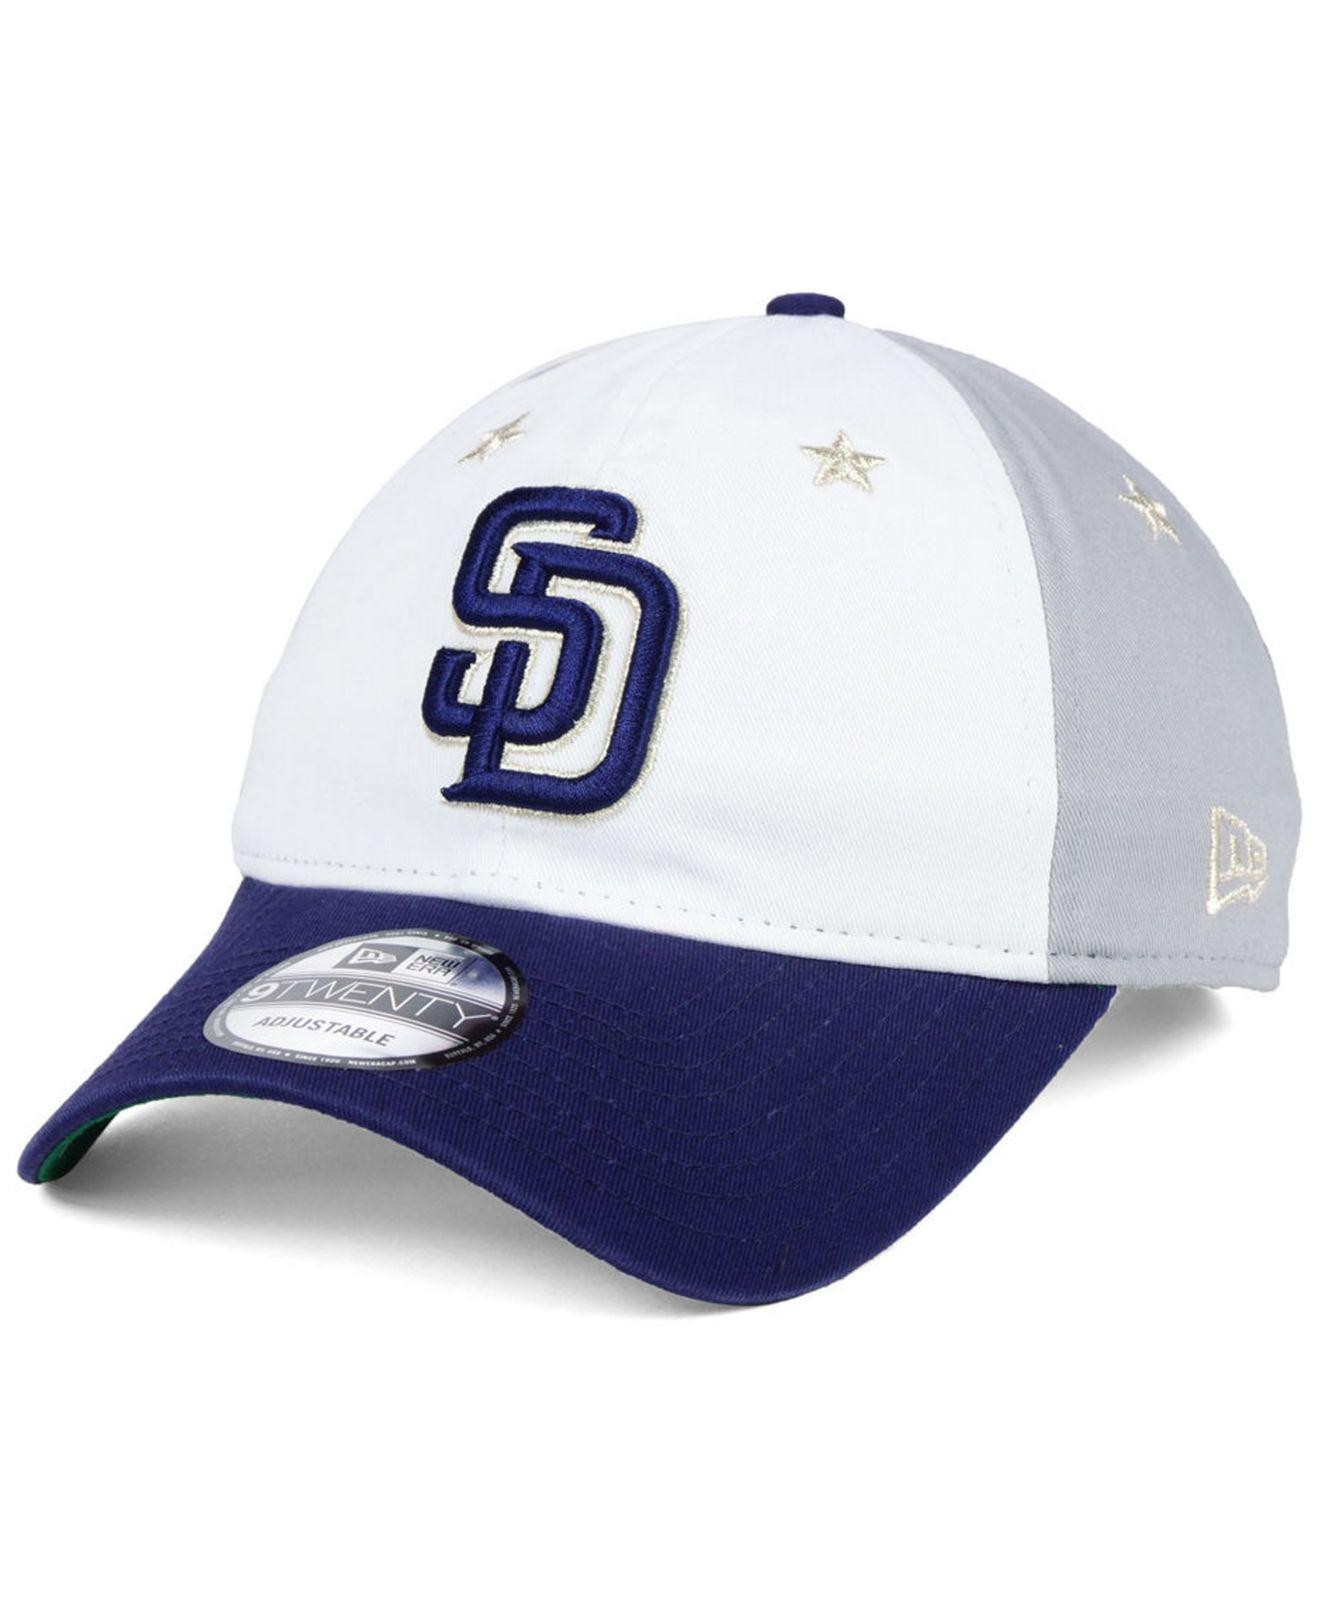 online store f563d f9b63 ... official store san diego padres all star game 9twenty strapback cap 2018  for men . view